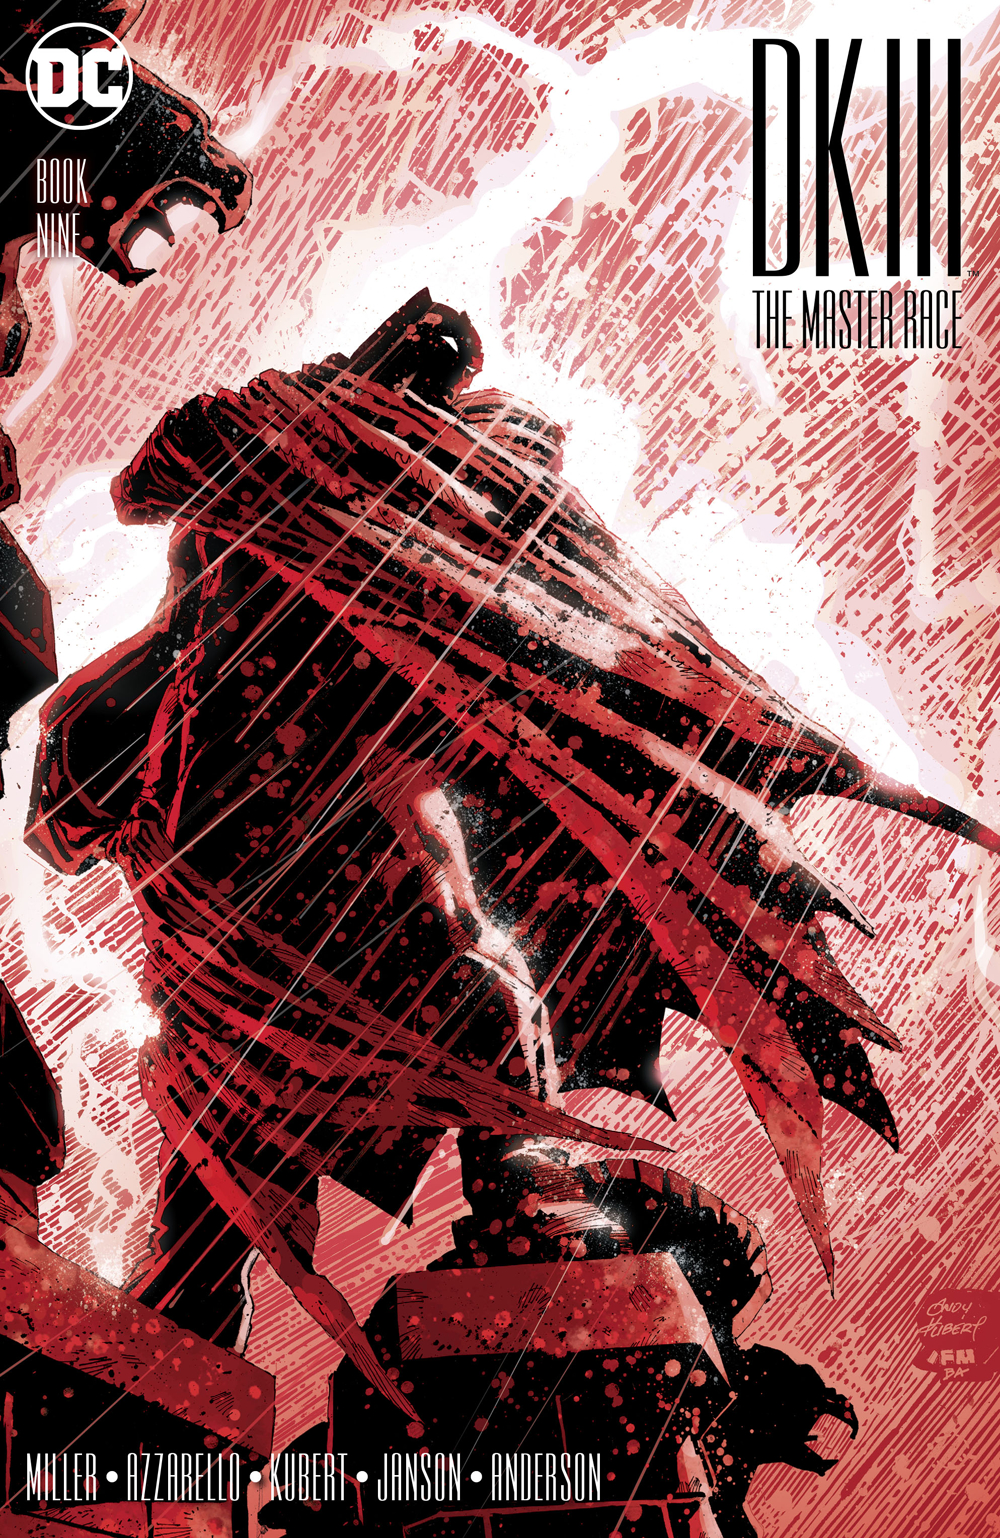 DARK KNIGHT III MASTER RACE #9 (OF 9)